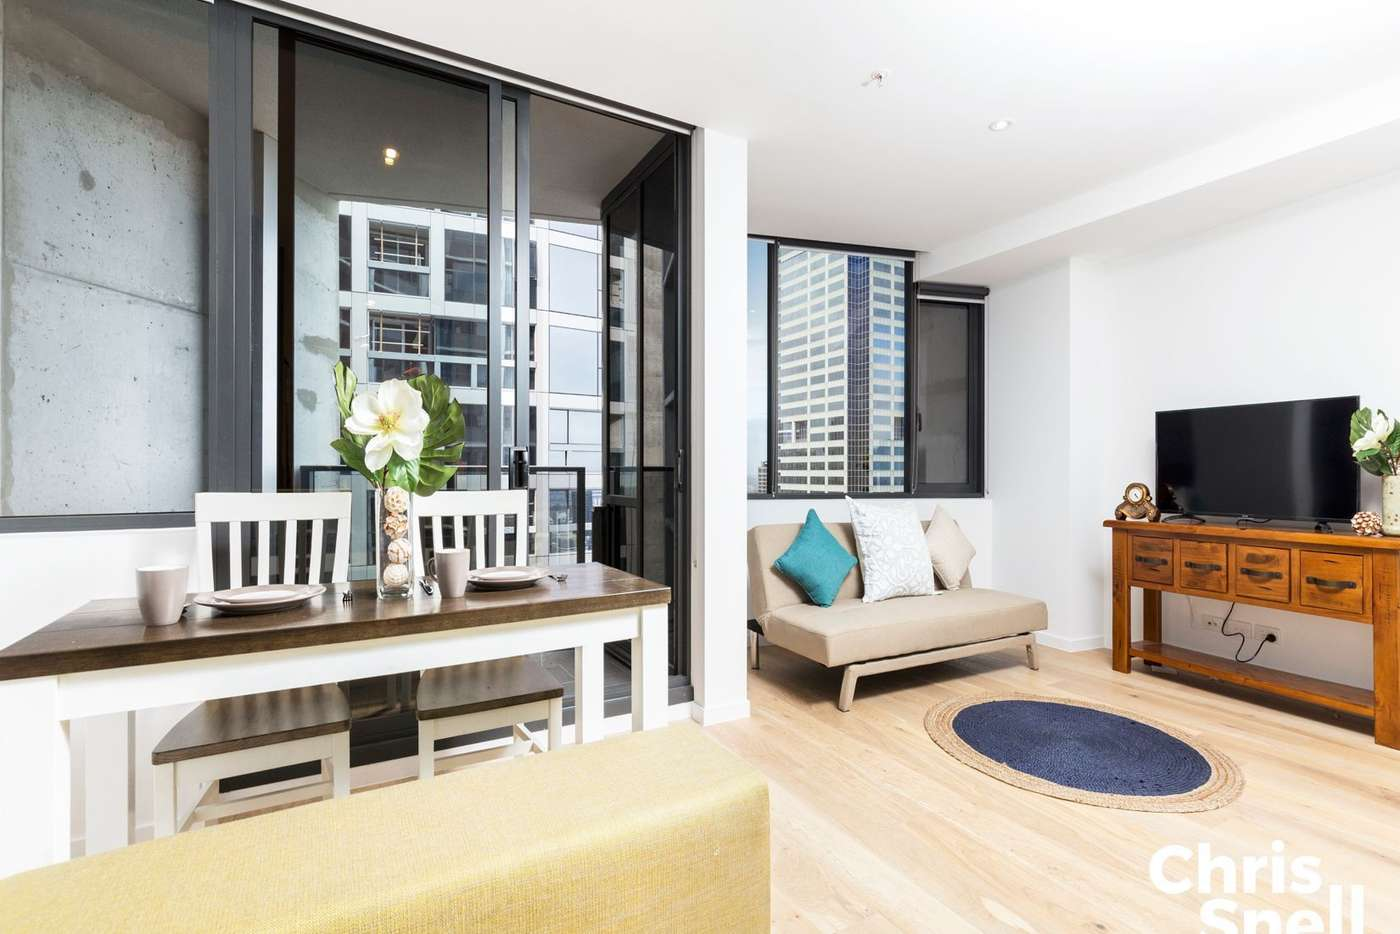 Main view of Homely apartment listing, 4501/33 Rose Lane, Melbourne VIC 3000